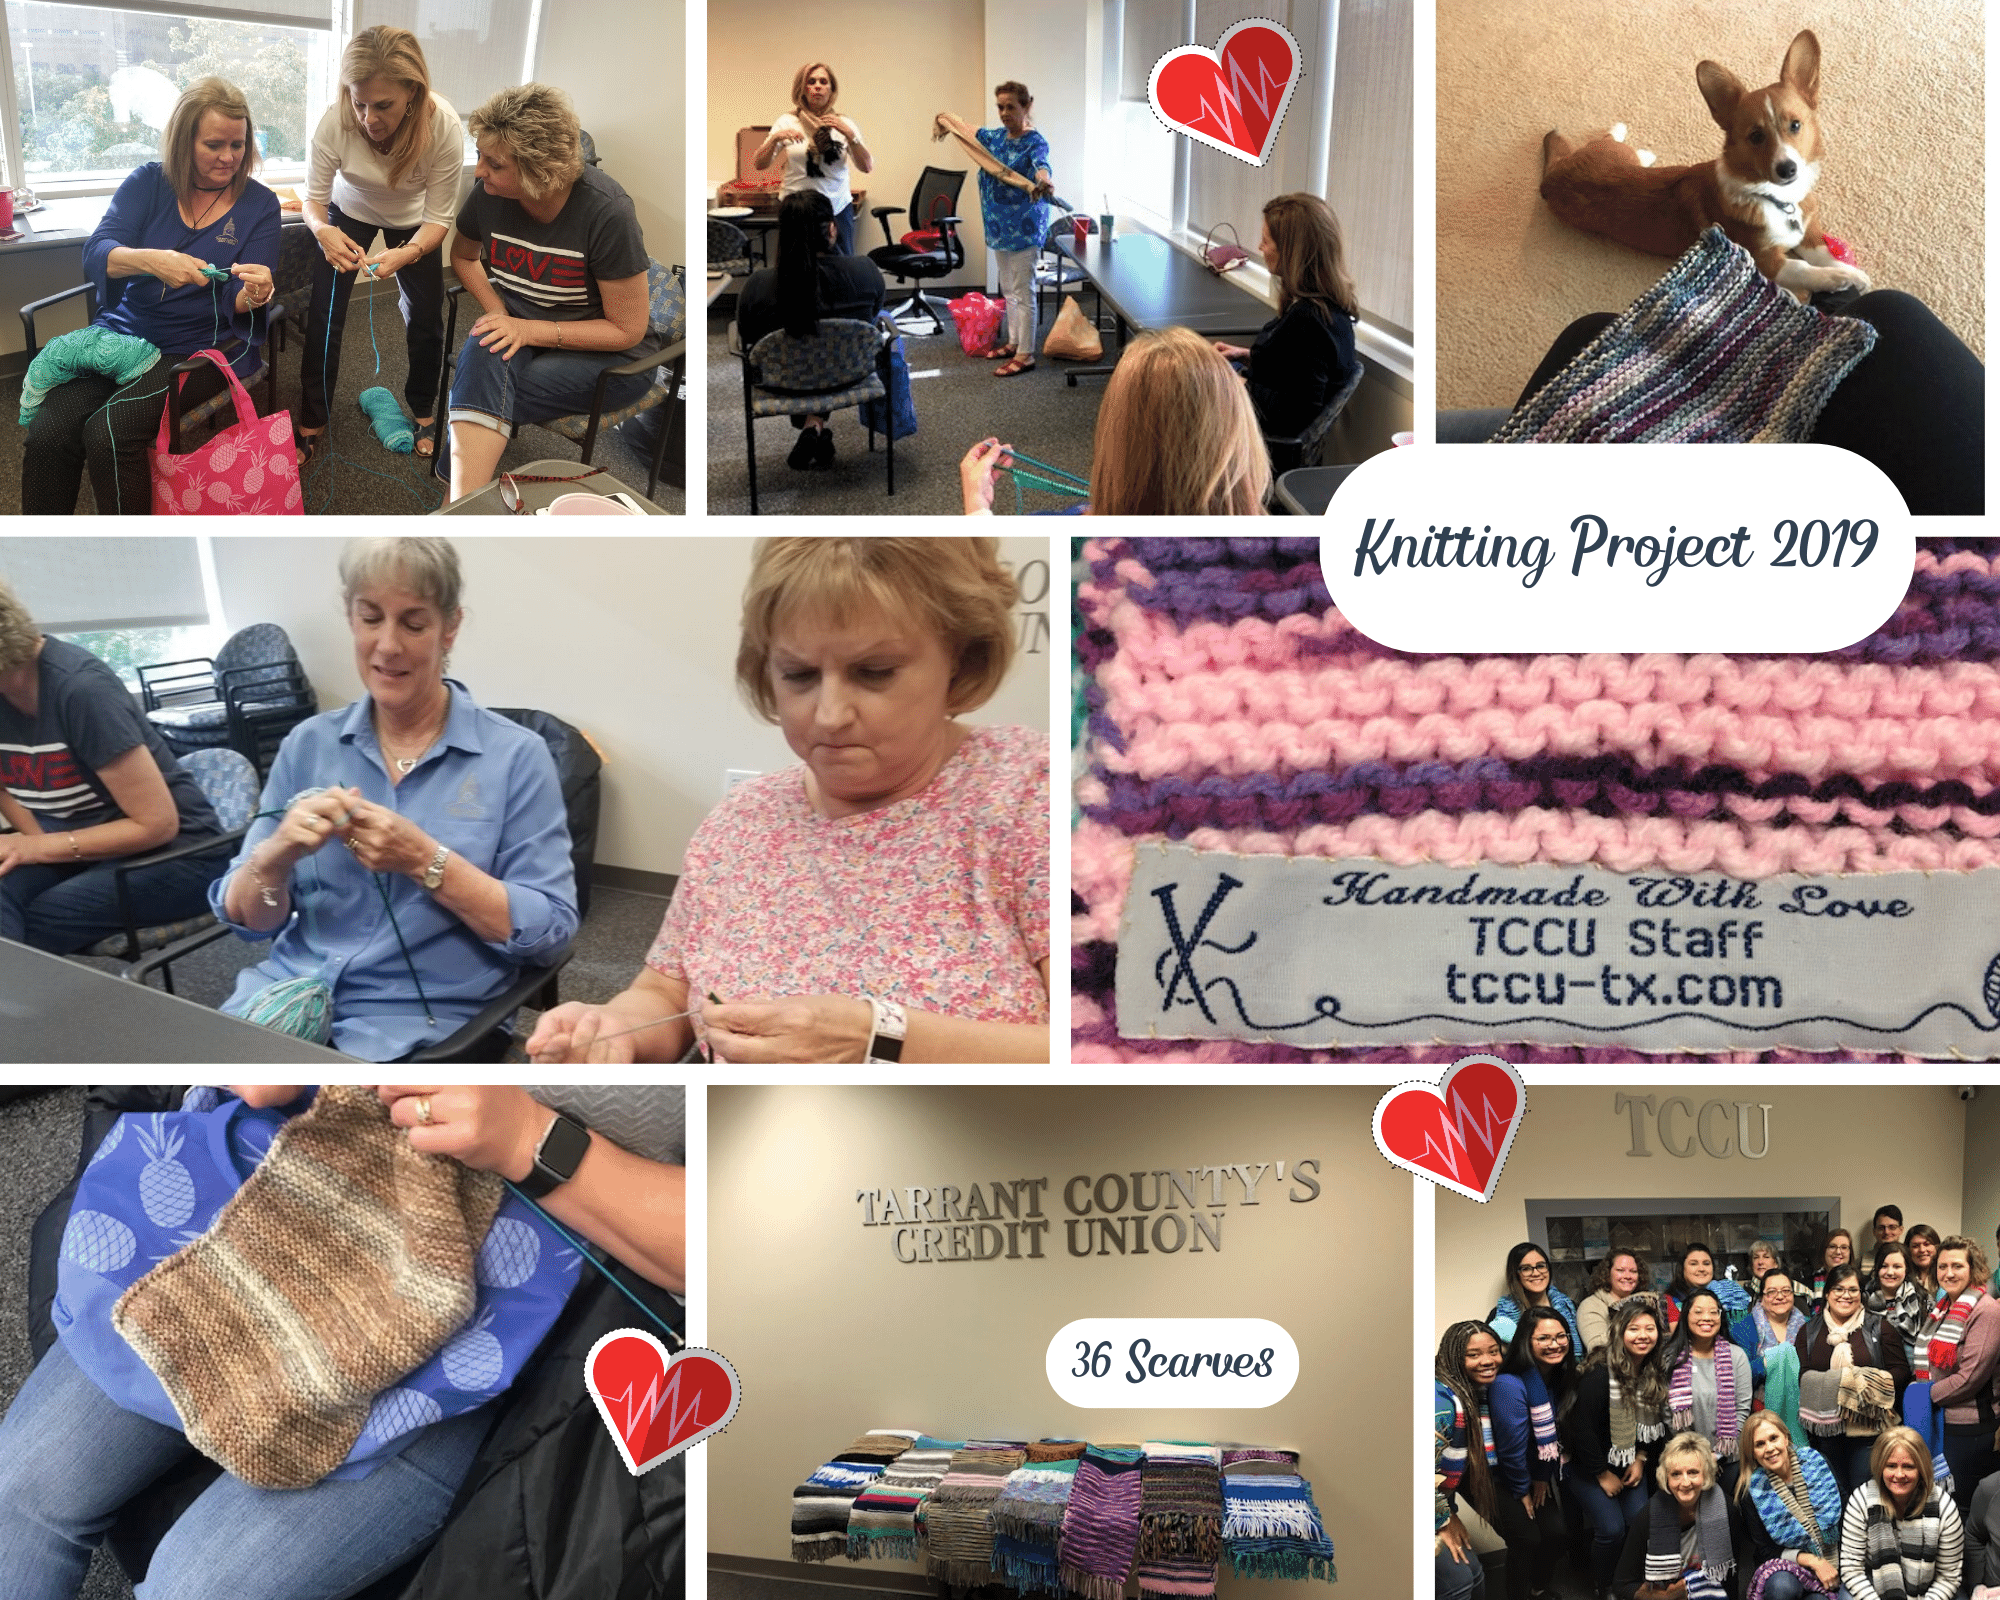 Knitting _for Health and Community